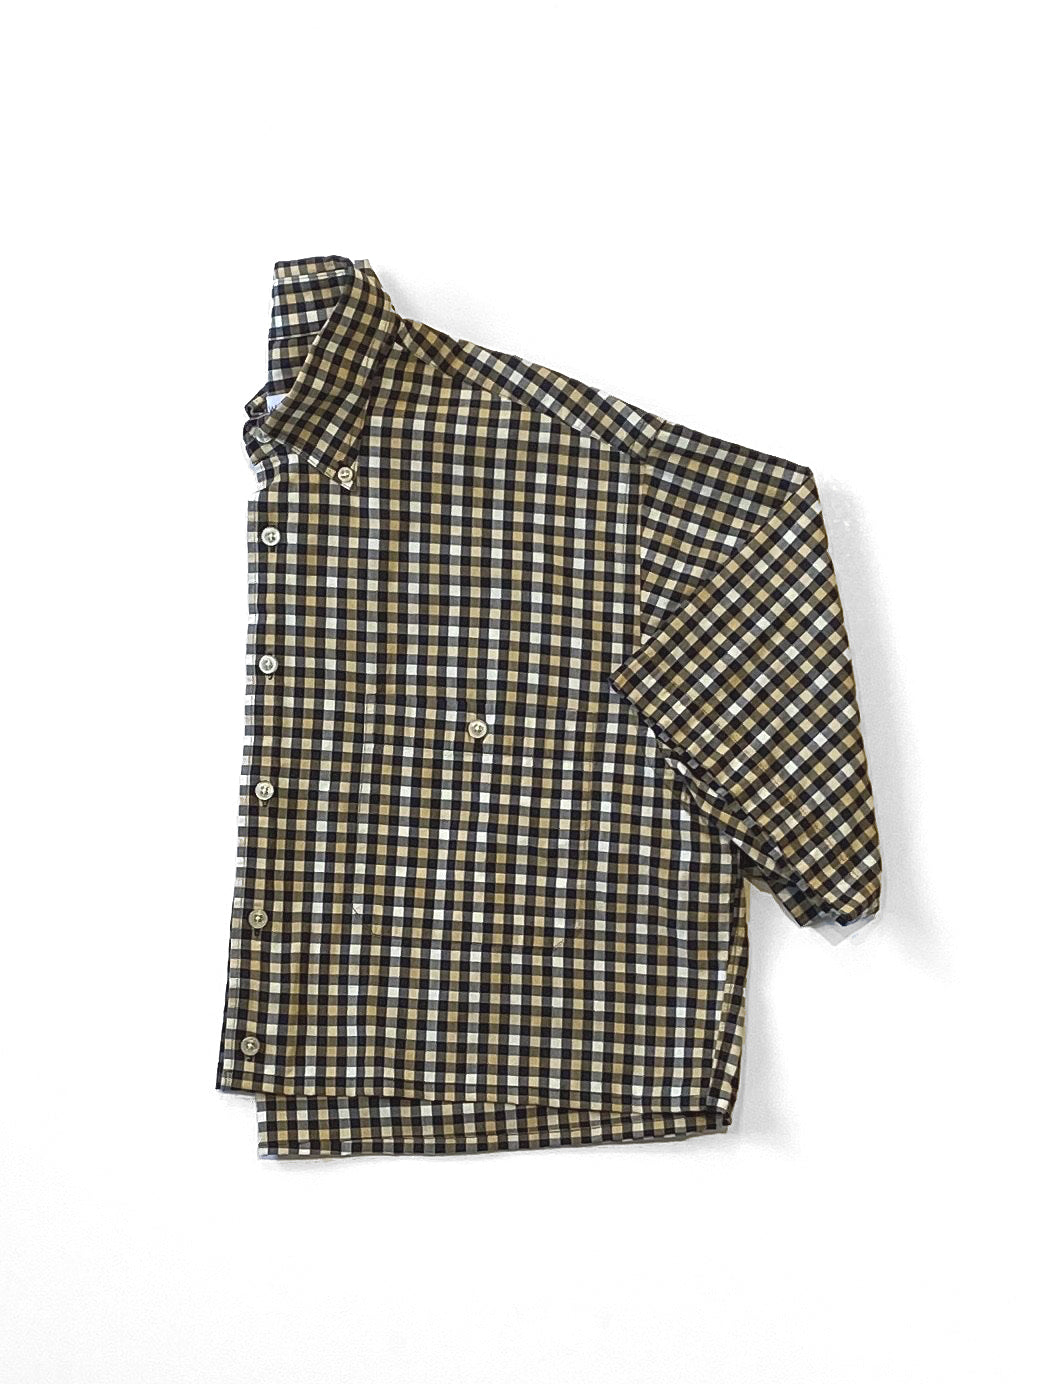 UP! - Reworked Button-Down Shirt  / Tan Plaid